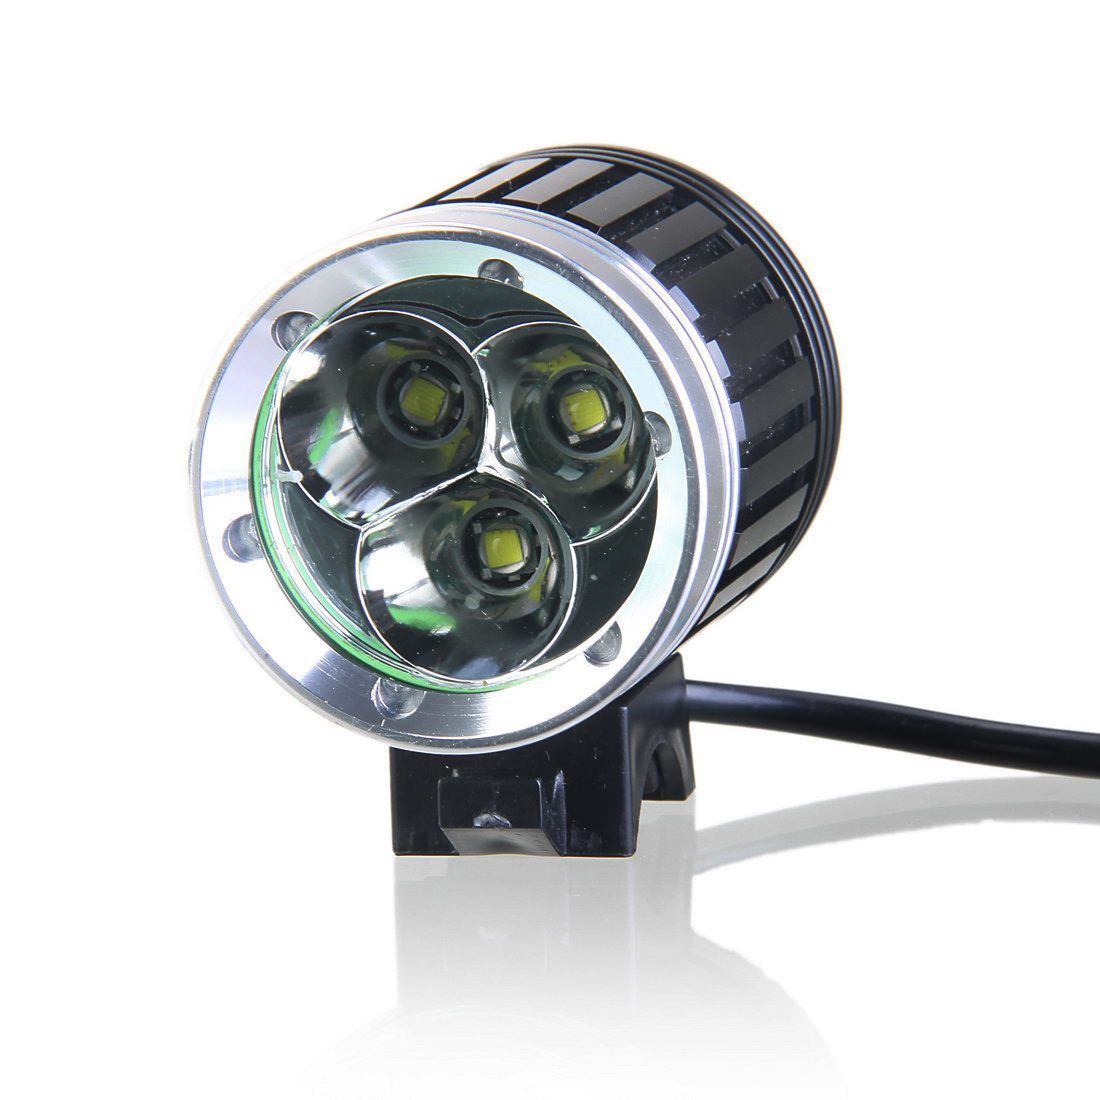 LED headlamp,headlight leds,led useful led,cree led